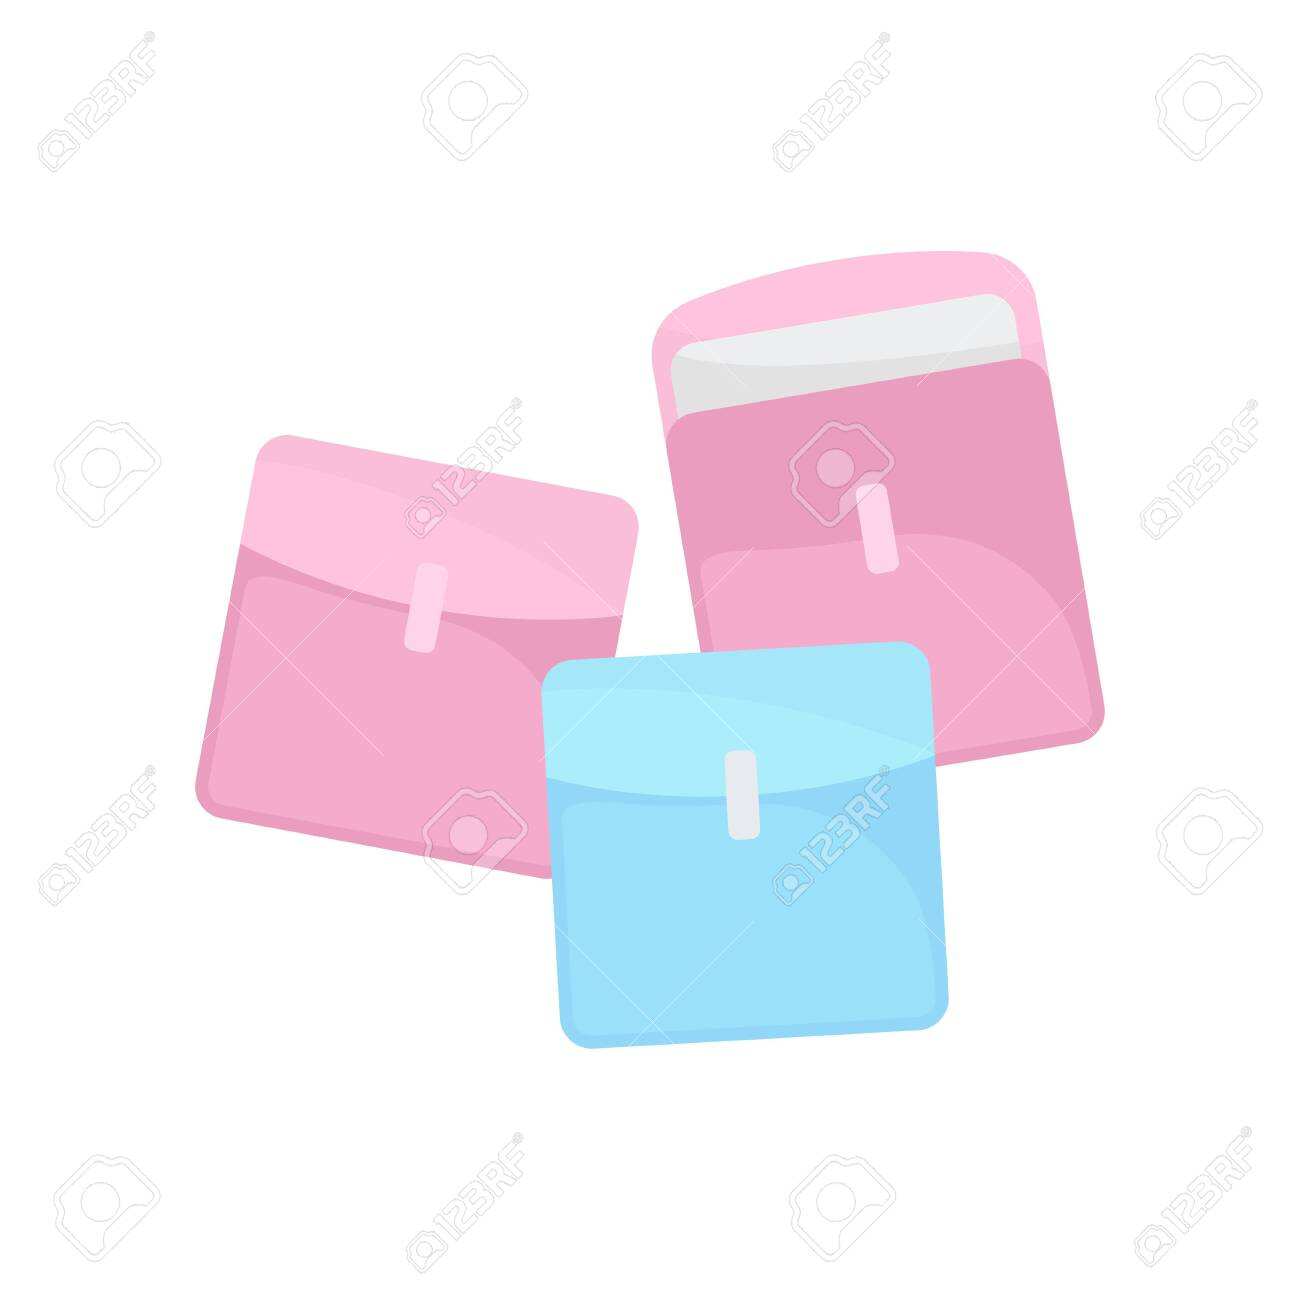 Sanitary Pads In Individual Packaging On White Background Modern Royalty Free Cliparts Vectors And Stock Illustration Image 124083886